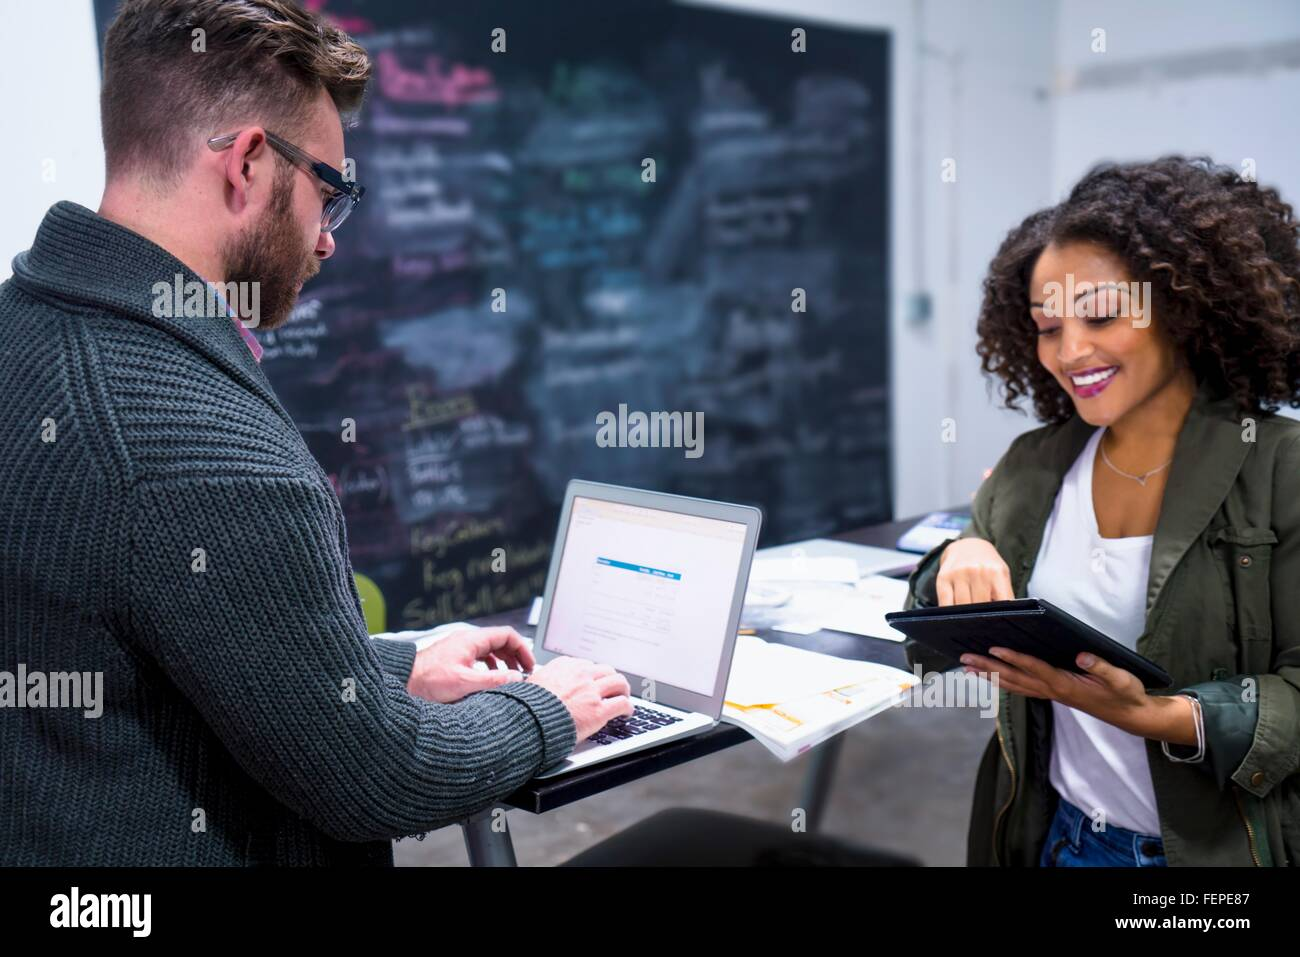 Colleagues in workplace using digital tablet and laptop smiling - Stock Image